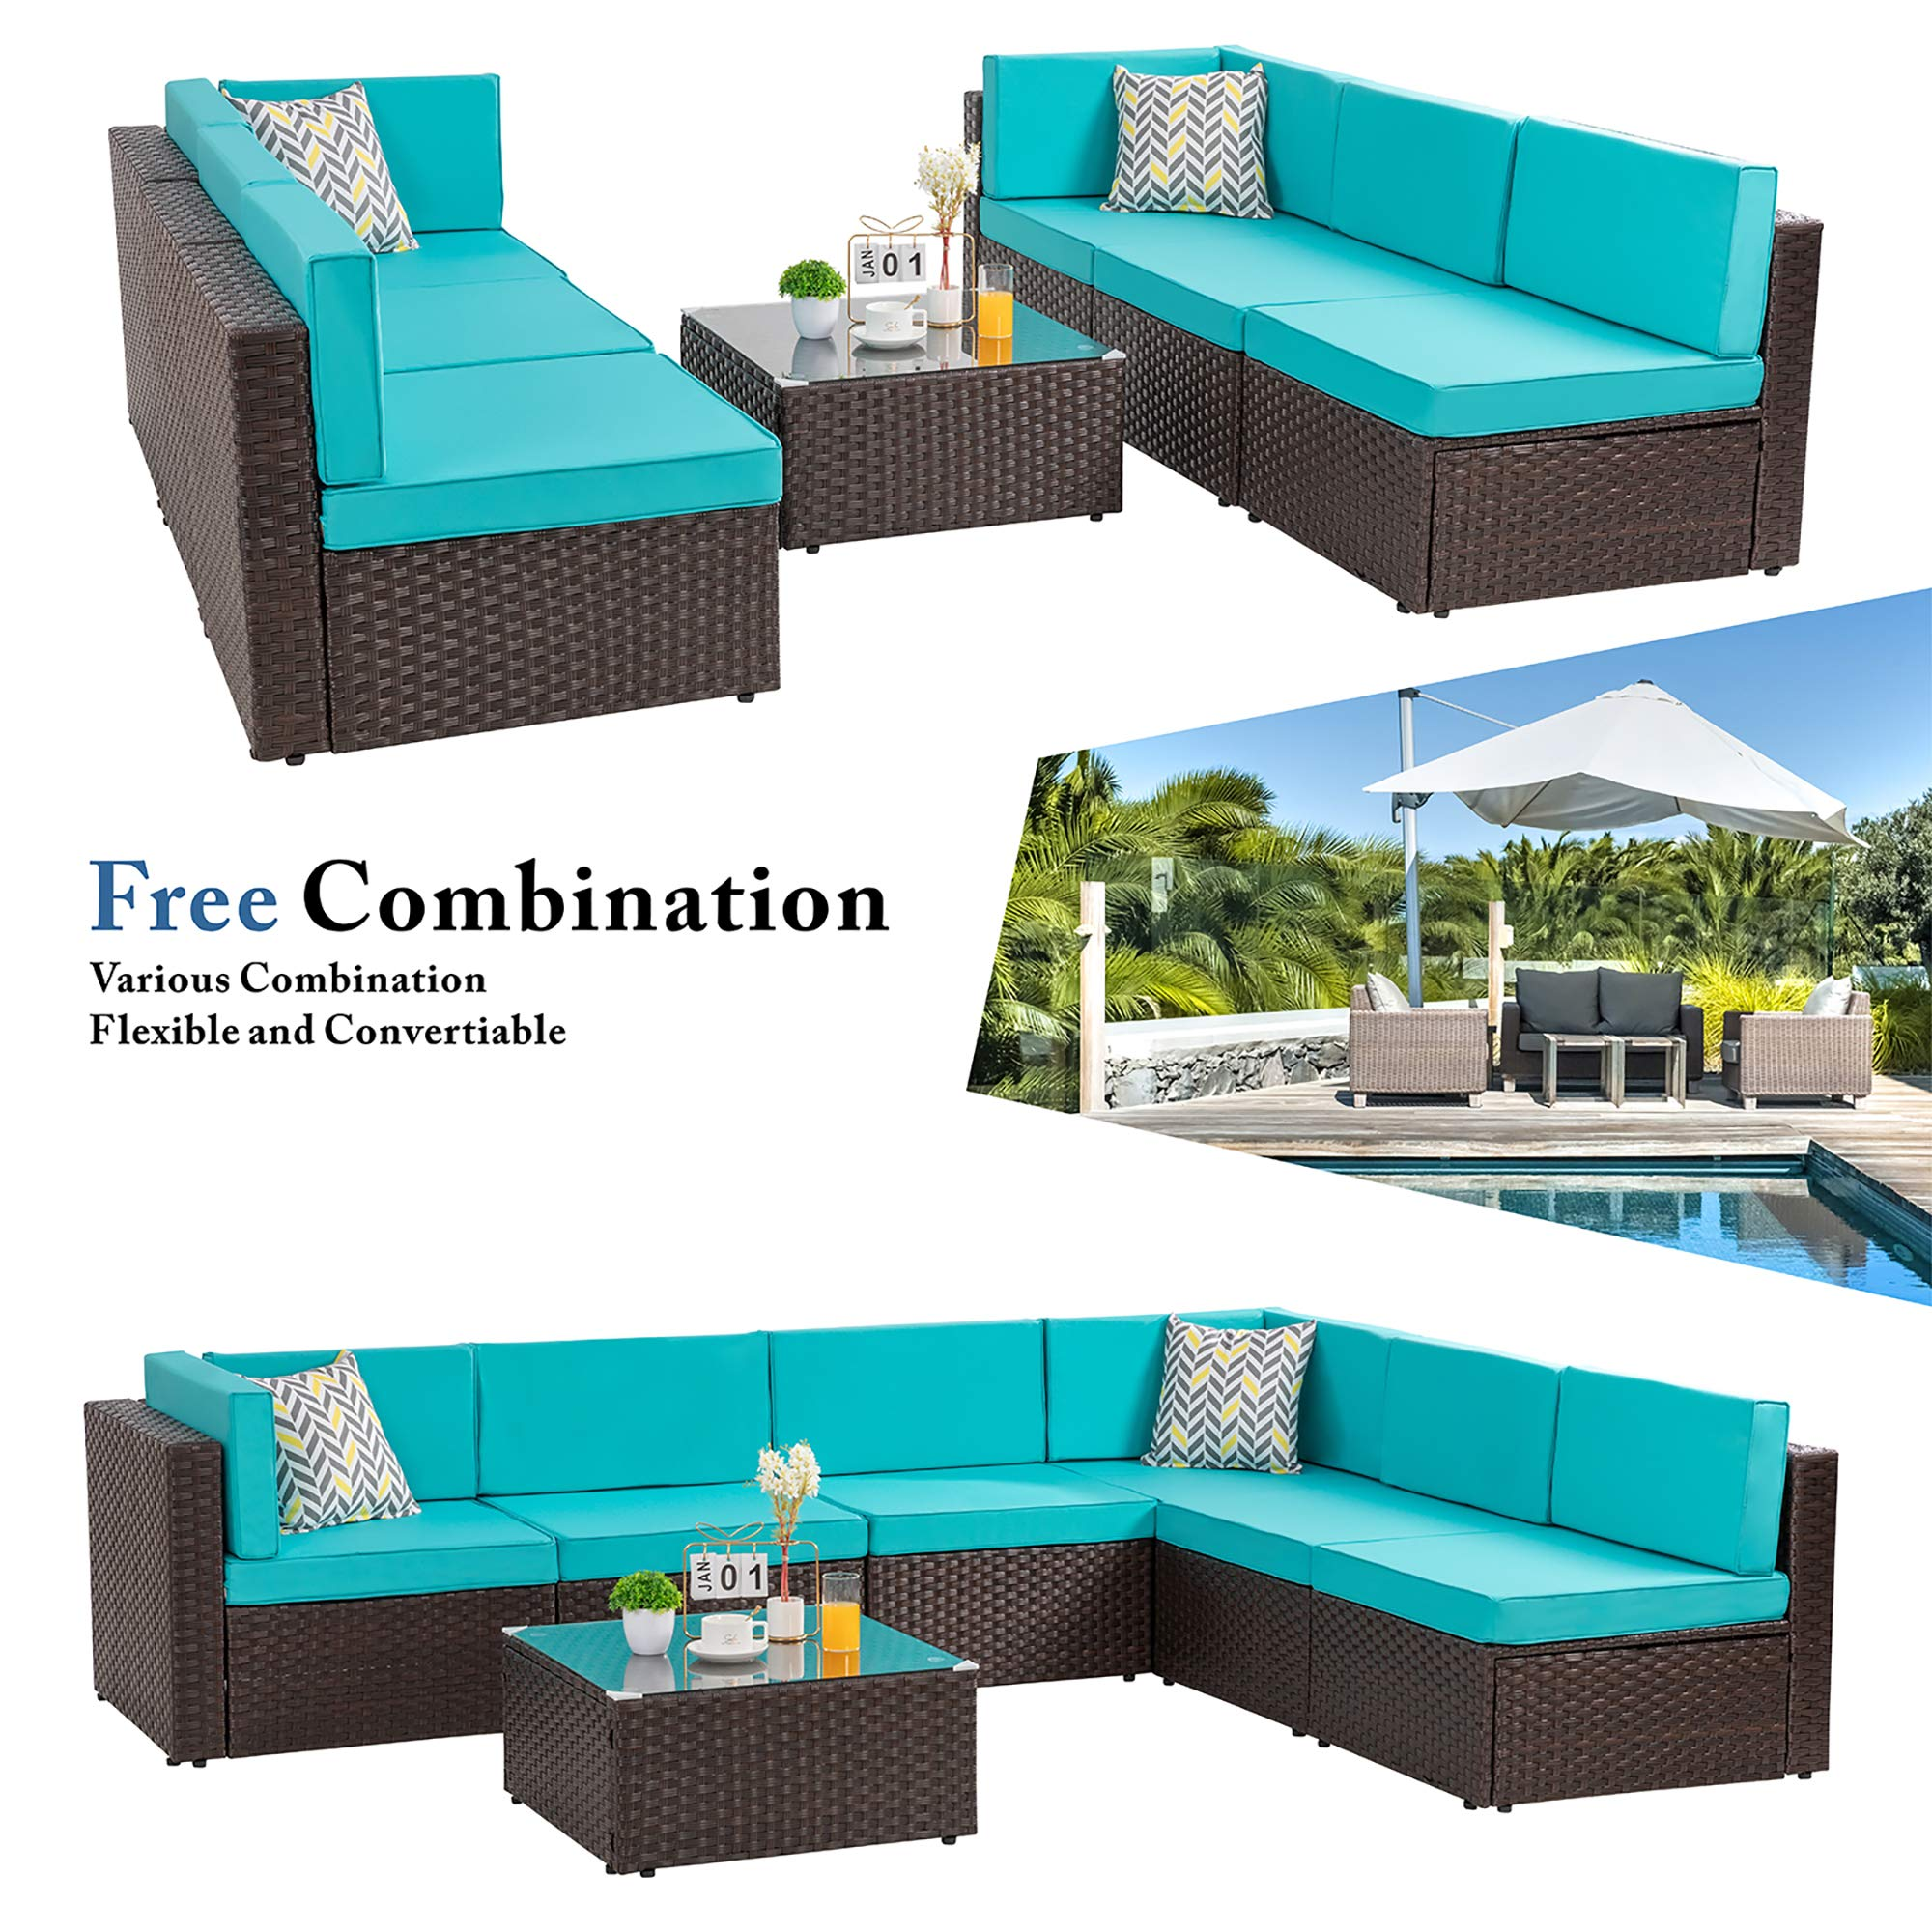 Walsunny 7pcs Outdoor Brown Rattan Sectional Sofa Patio Wicker Furniture Set Conversation Sets with Tea Table&Washable Couch Cushions (Blue)